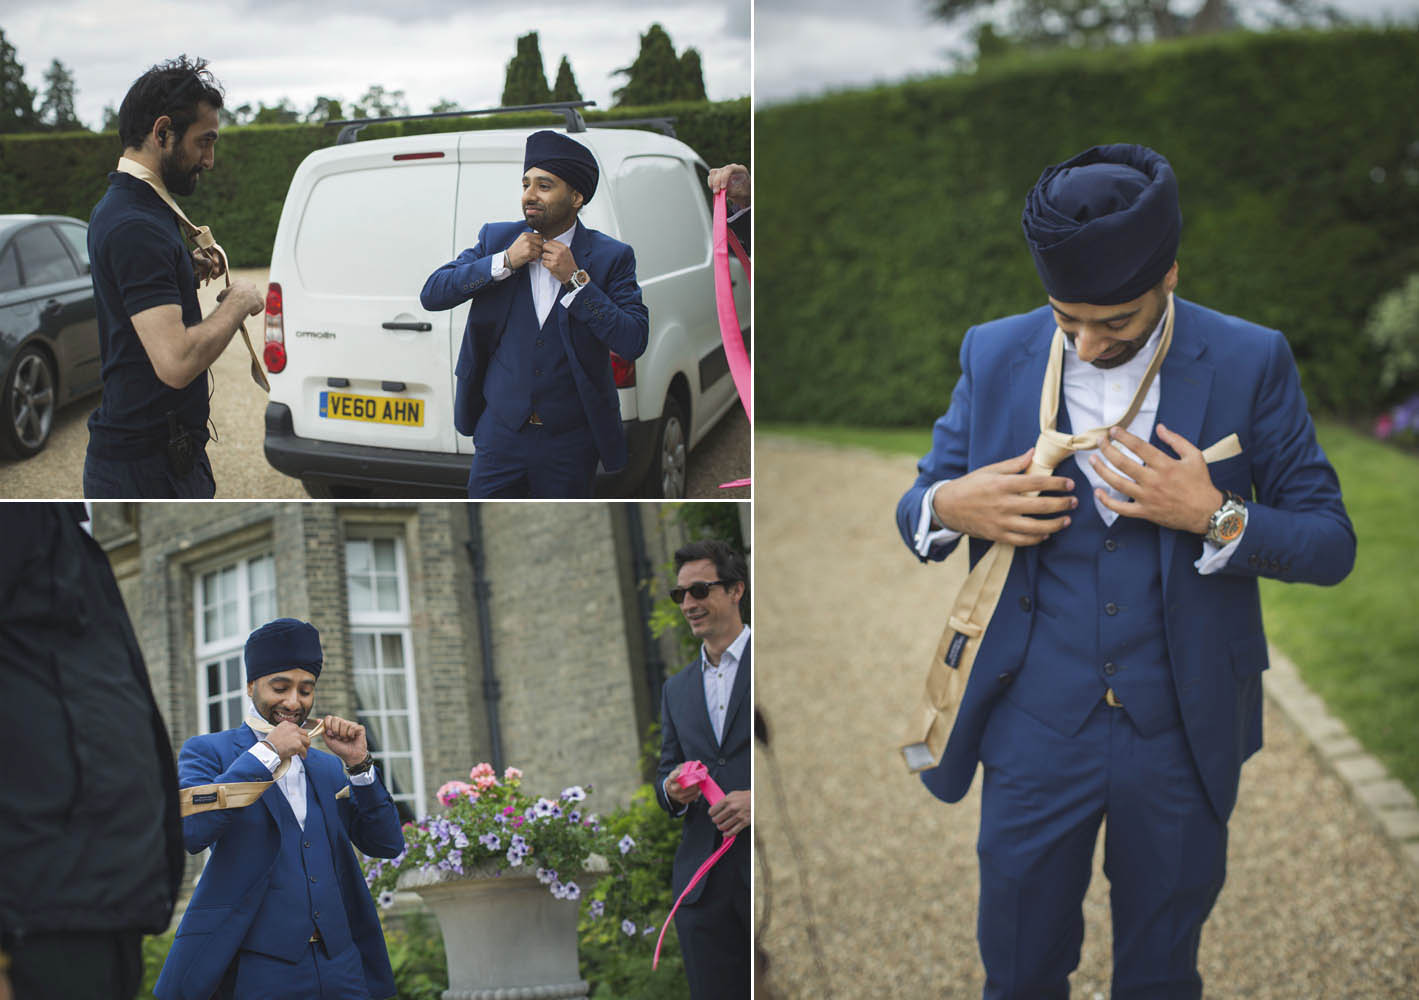 wedding_in_london_8.jpg